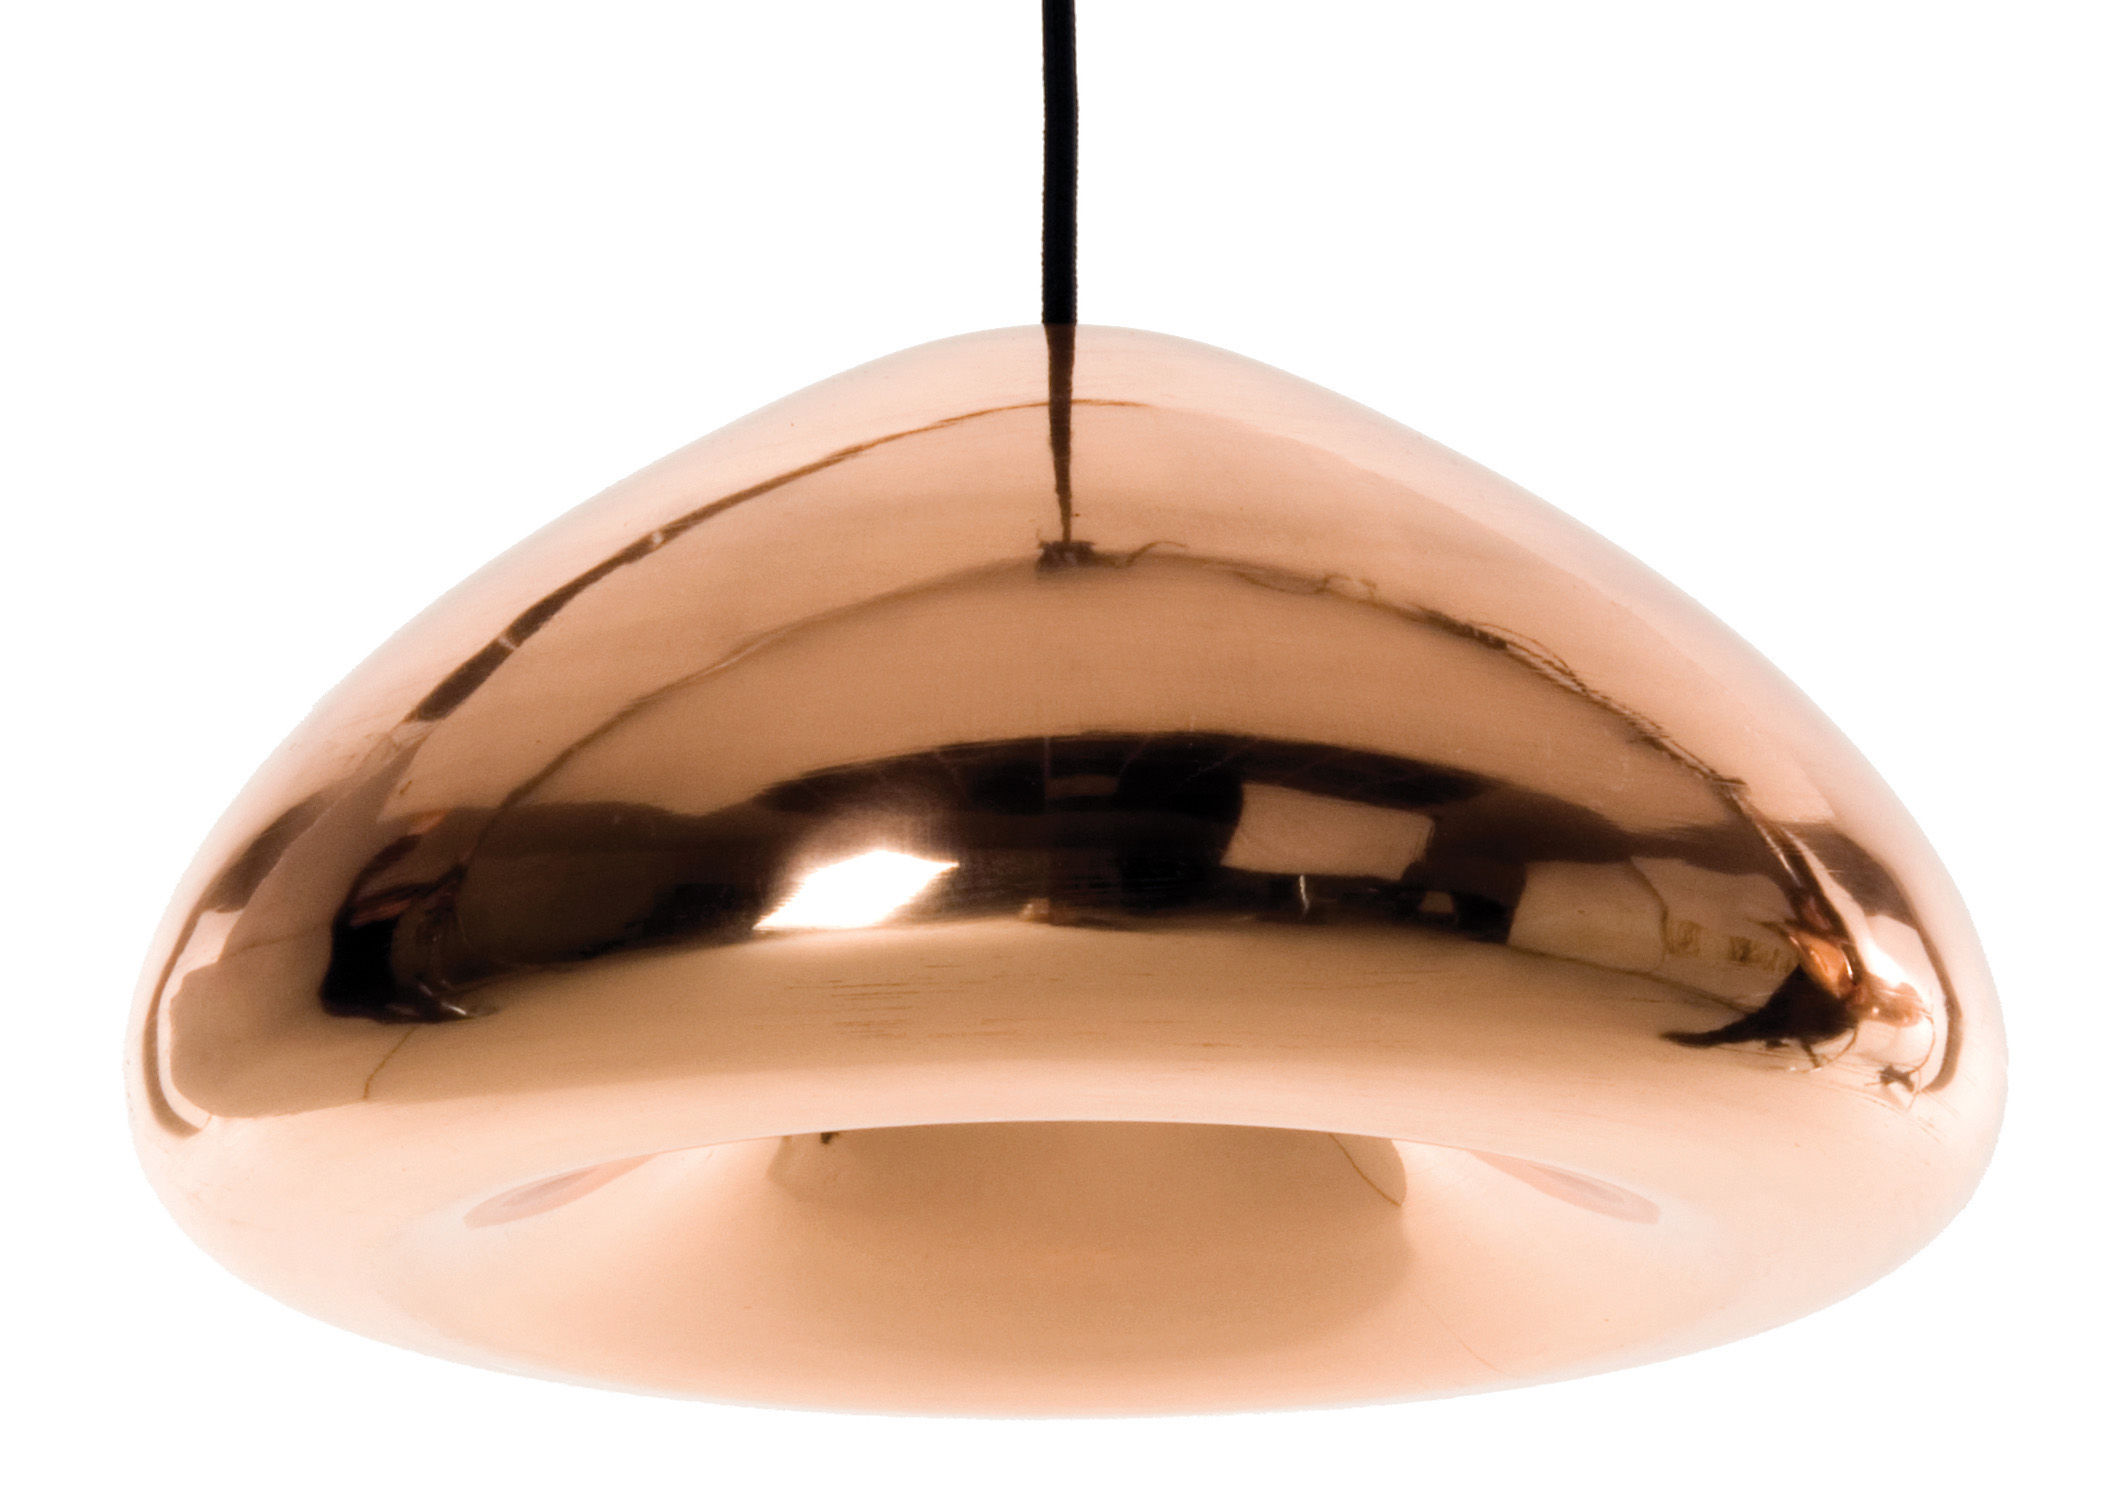 Luminaire - Suspensions - Suspension Void - Tom Dixon - Cuivre - Cuivre